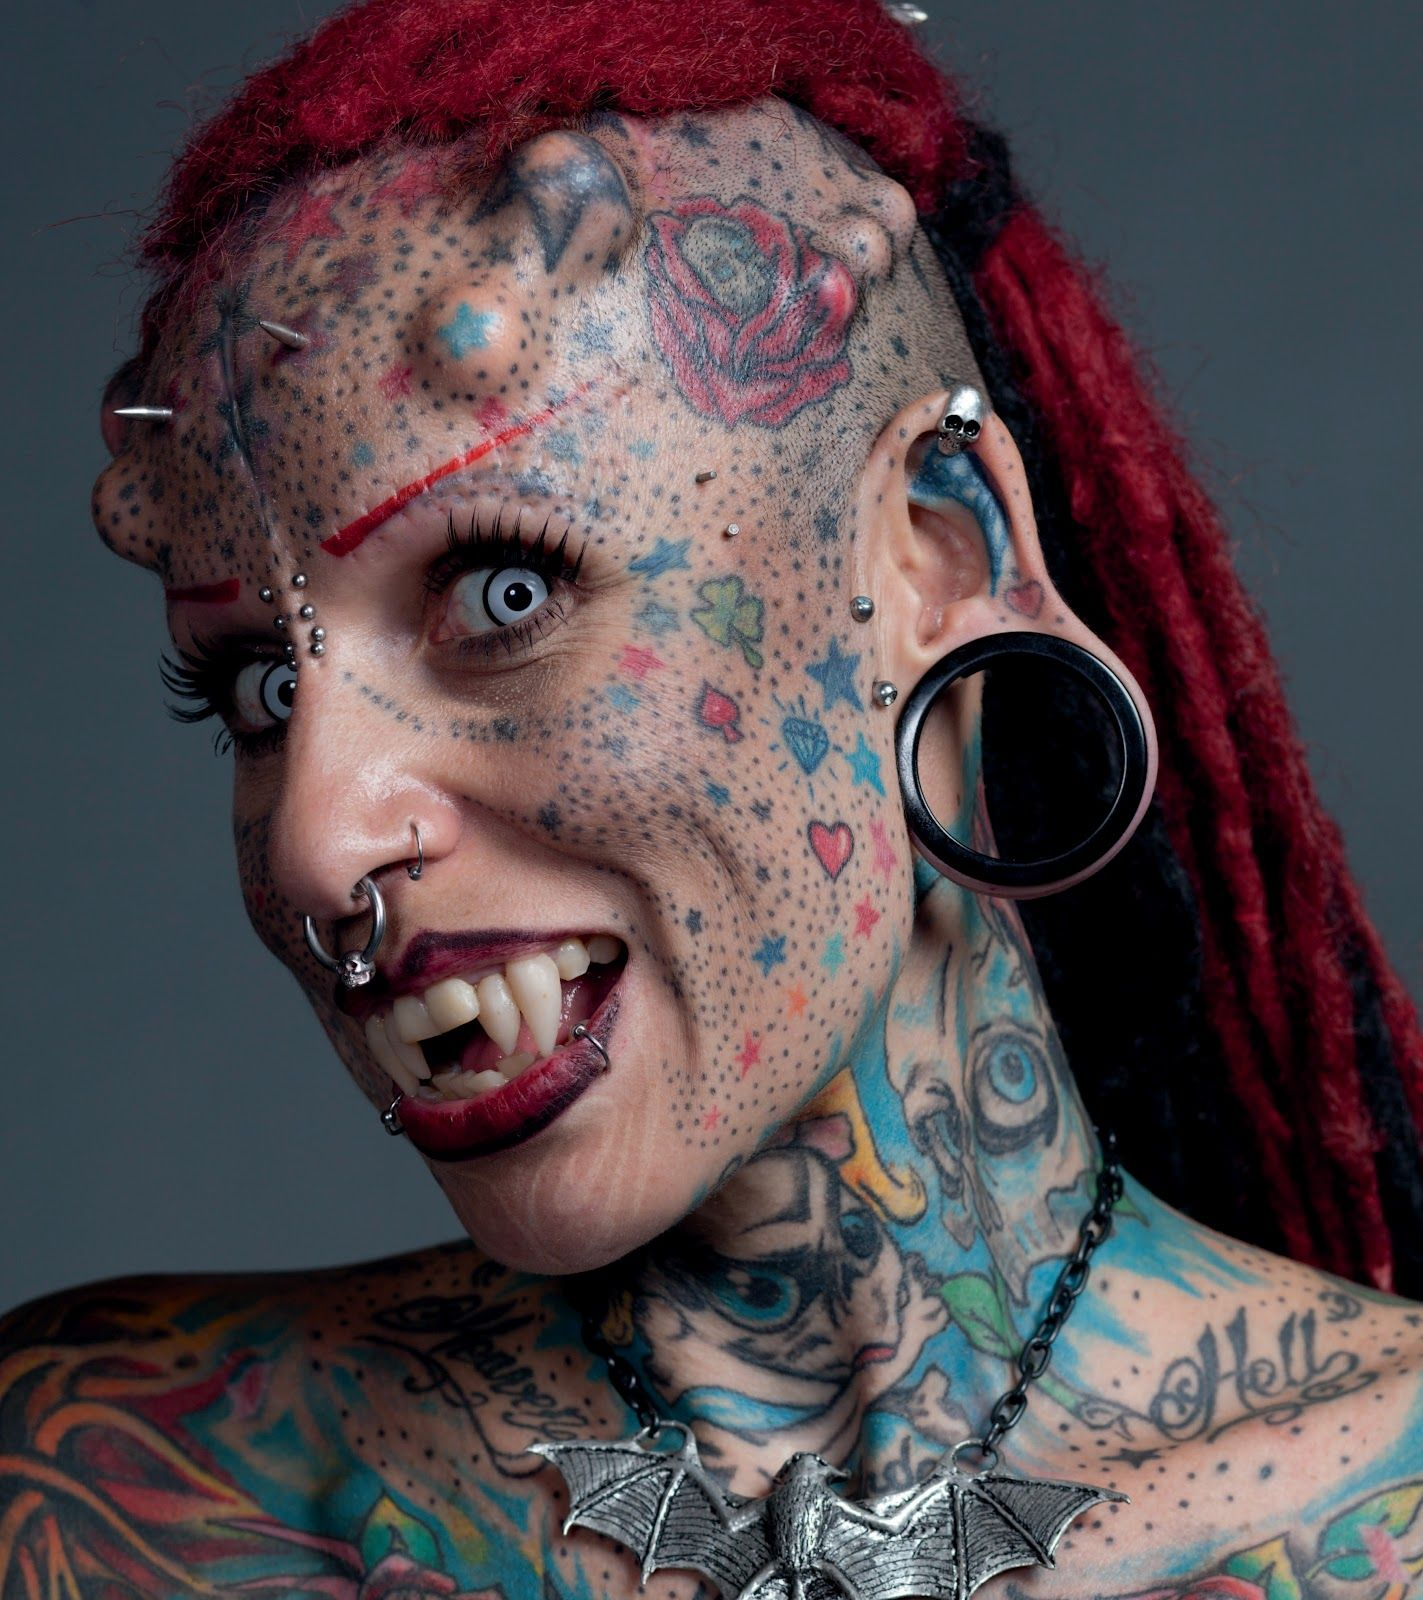 Maria Jose Cristerna Known As The Vampire Woman Because Of Her Extreme Body Modifications Including Hundreds Of Tattoos Skin Implants And Permanent